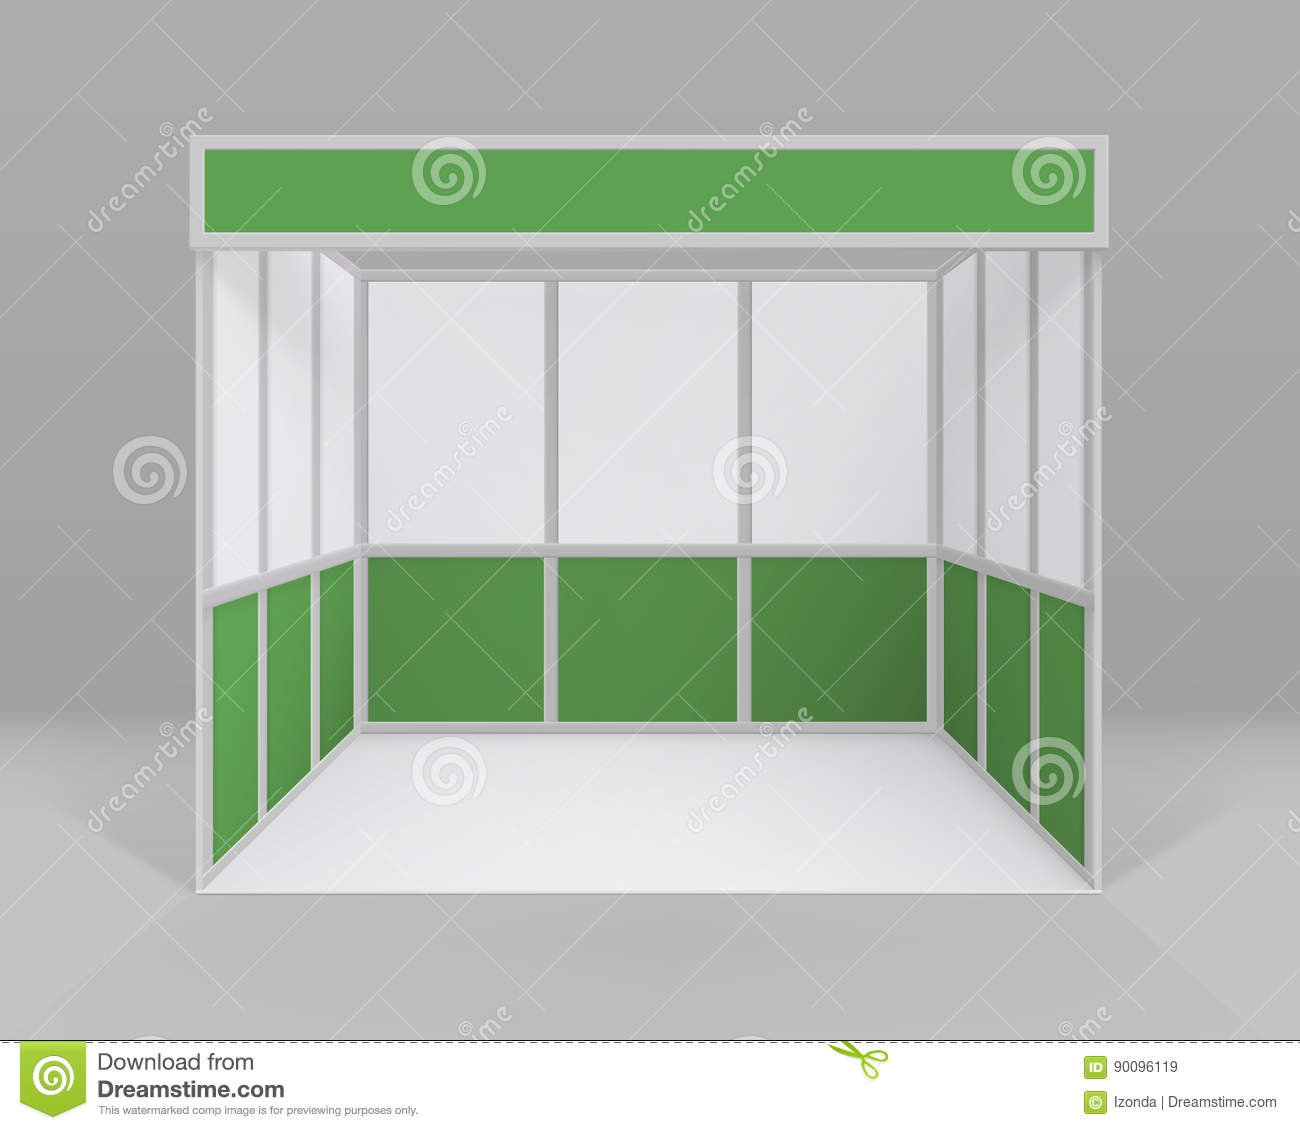 Exhibition Stand Free Vector : Vector white green blank indoor trade exhibition booth standard